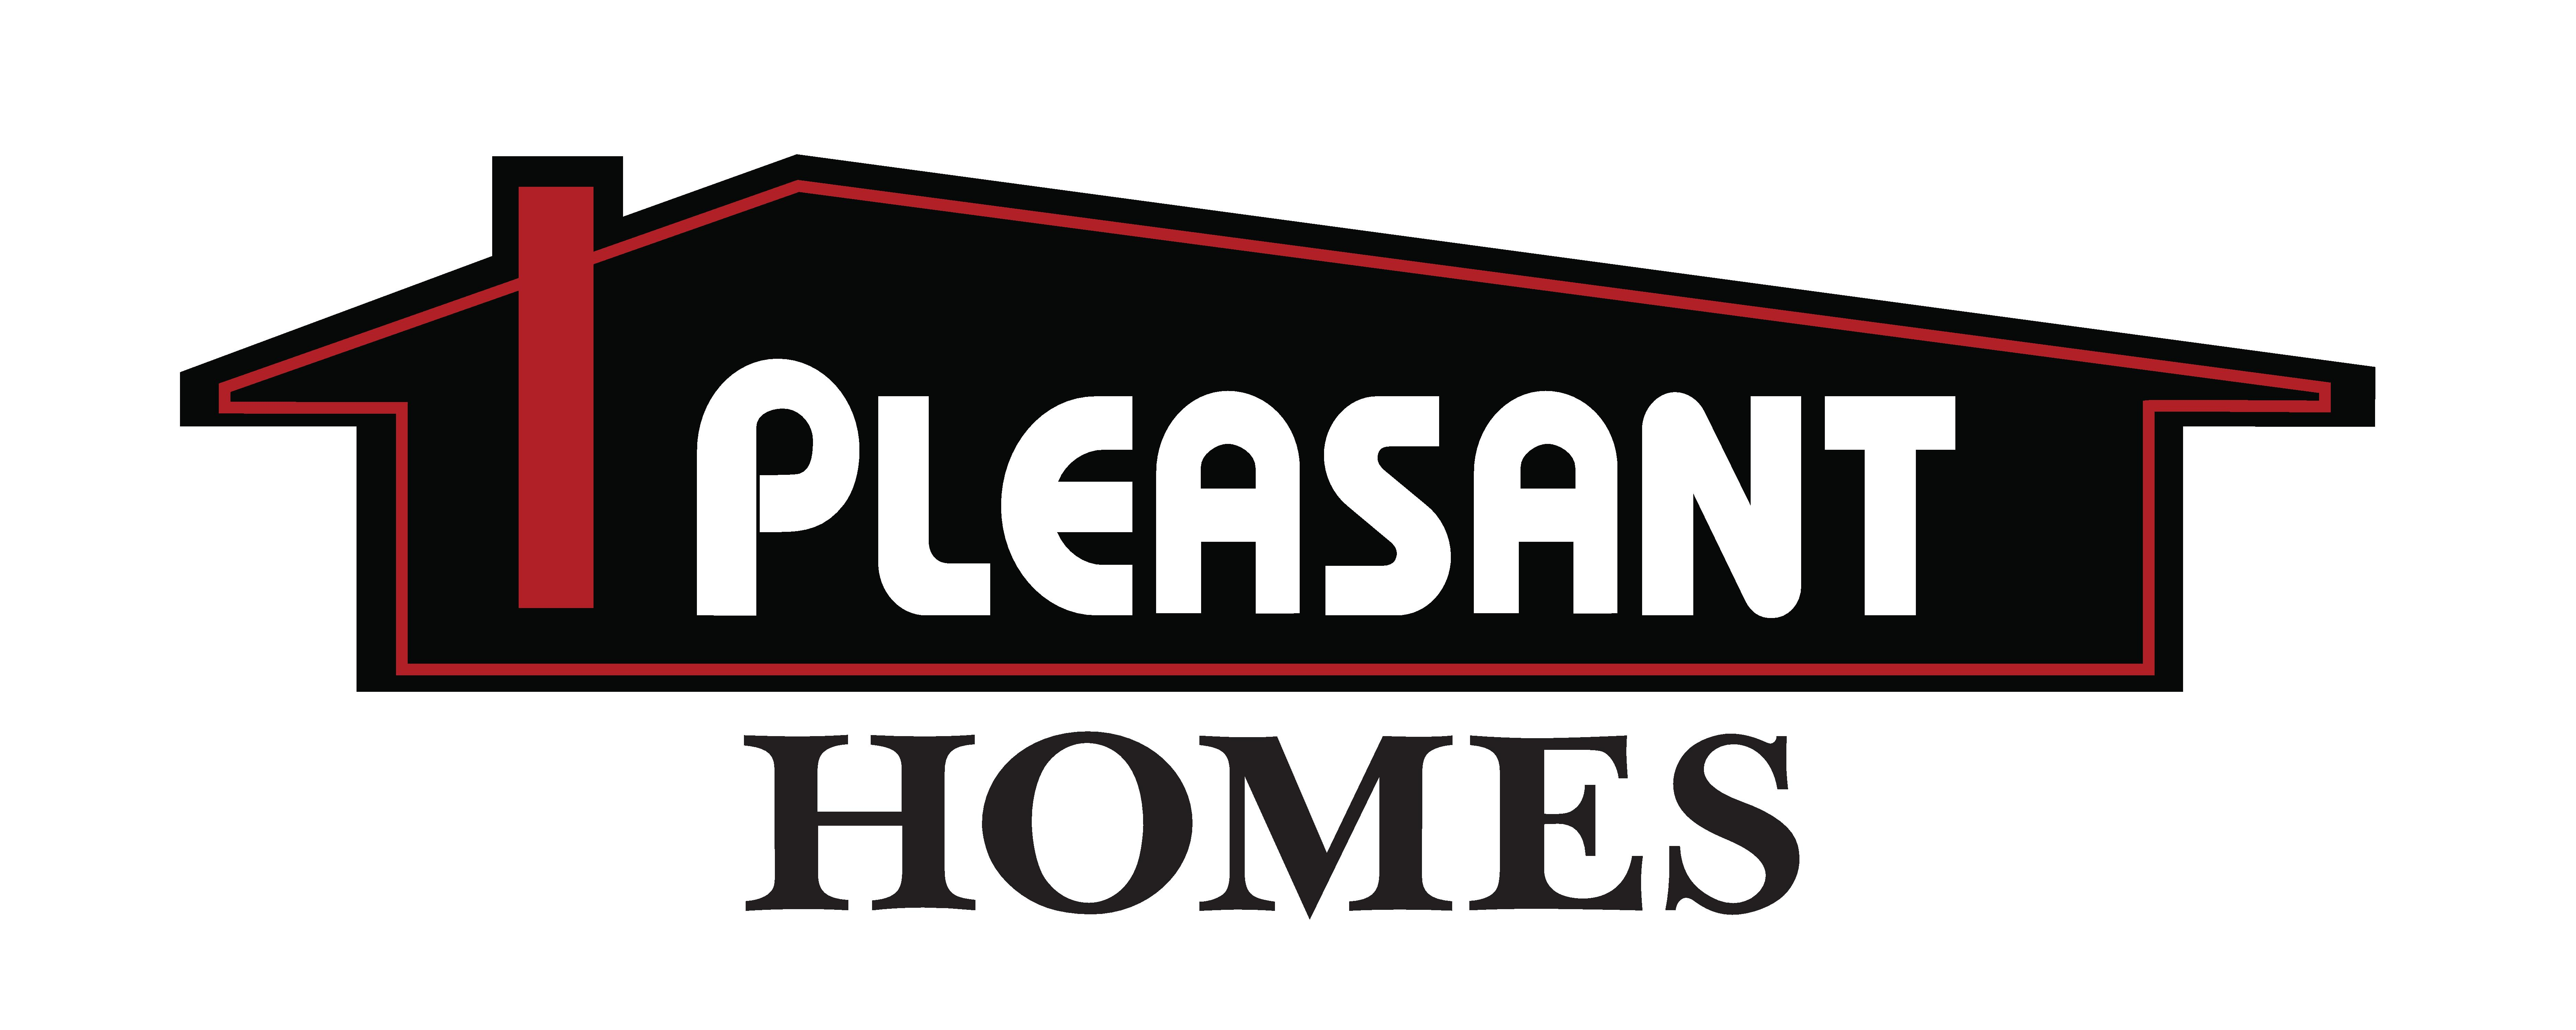 Pleasant Homes Ltd logo